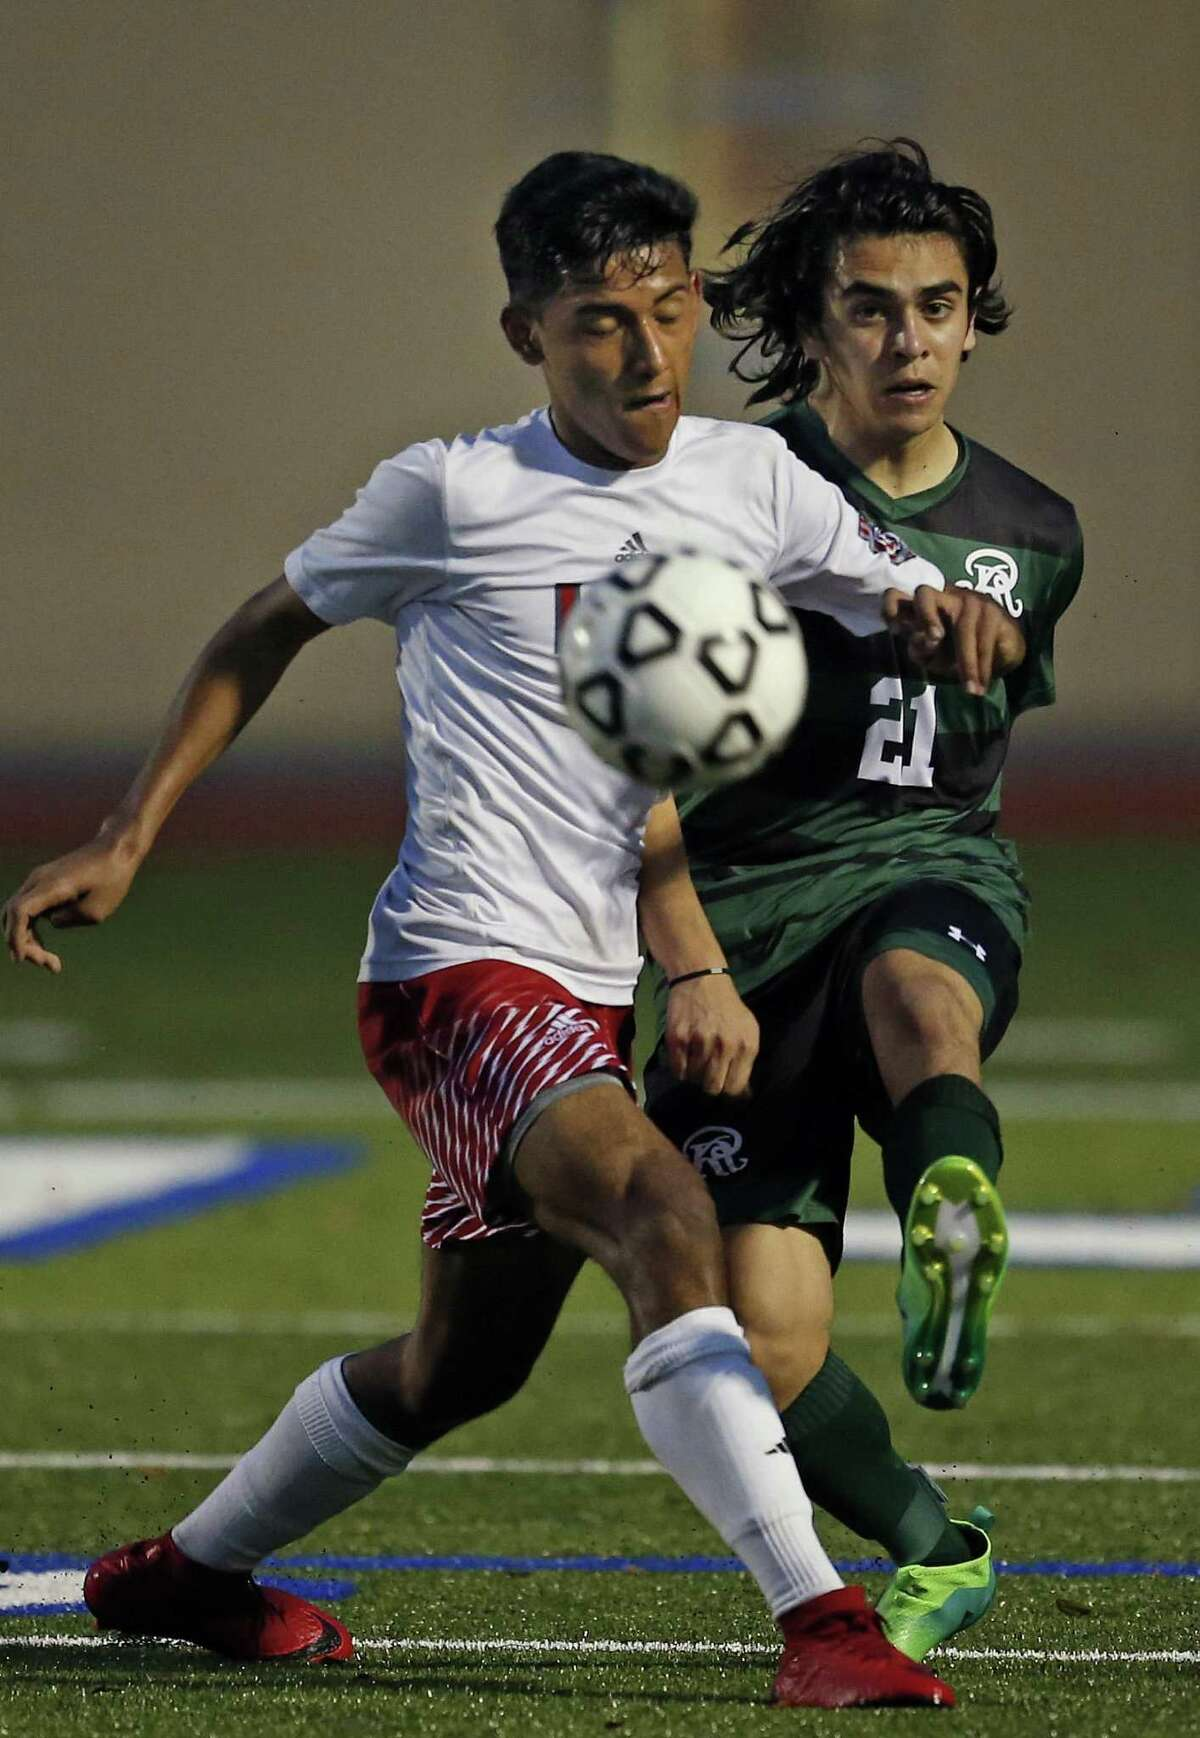 Lees?' Antonio Loyola watches as Reagans?' Andreas Christodoulou kicks the ball past him from District 26-6A high school boys soccer showdown between No. 1 Reagan and No. 2 Lee on Tuesday, February 6, 2018 at Comalander Stadium